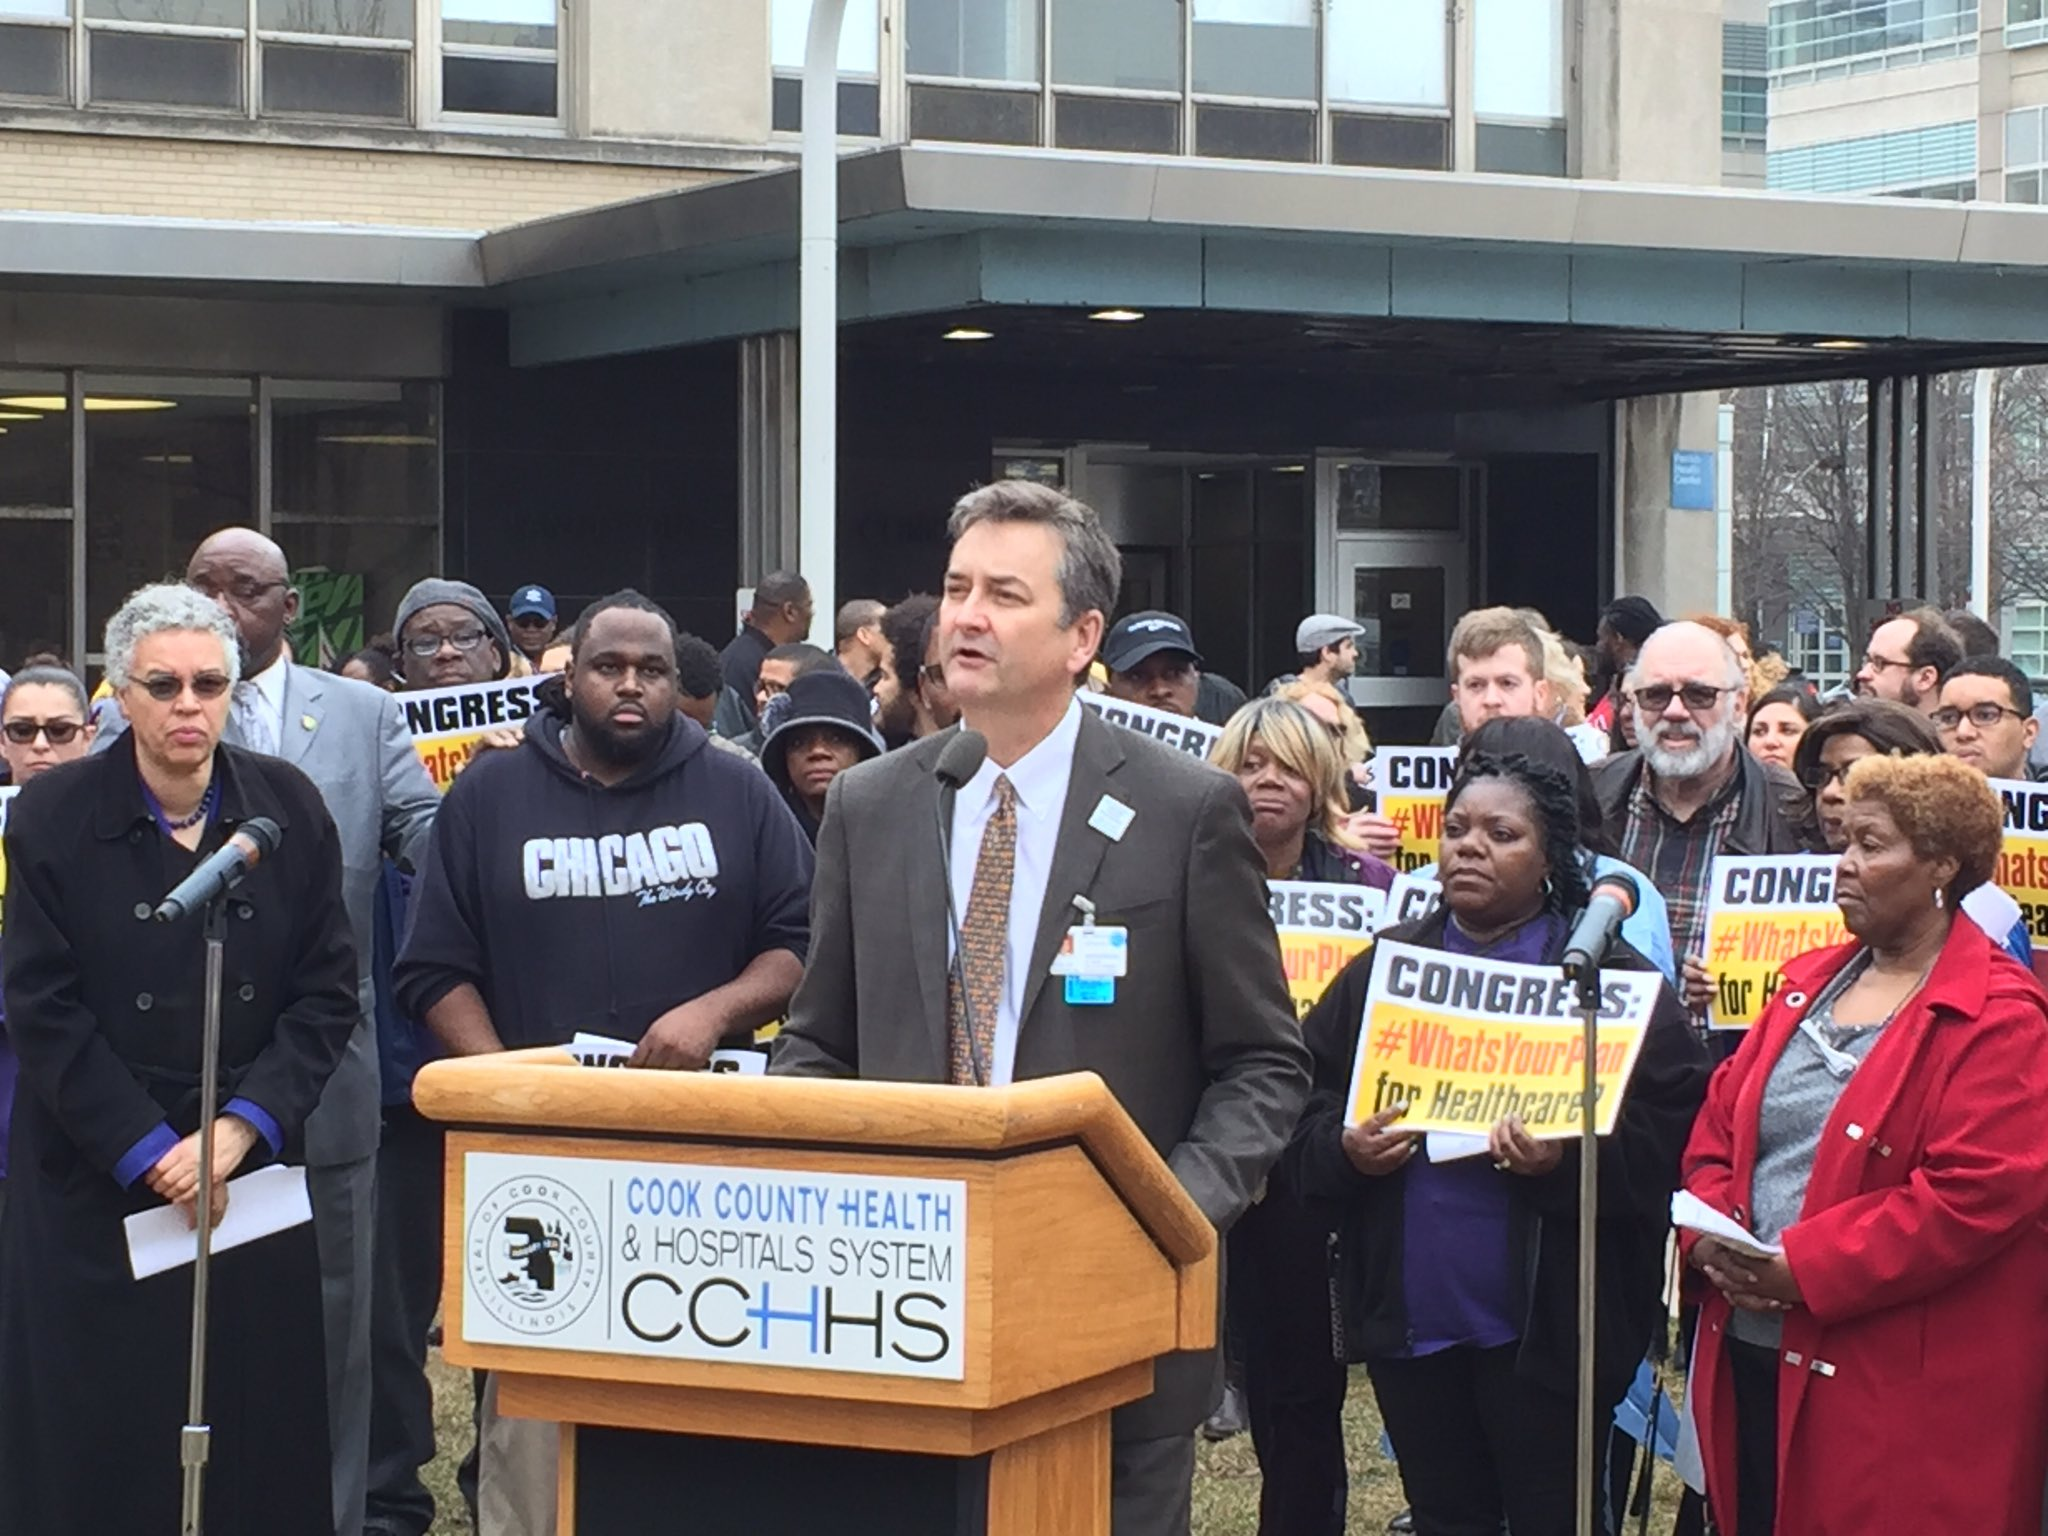 Dr Shannon, CEO  Cook County Hospitals: 'Repeal of #ACA / #Obamacare is cruel, forcing patients to choose care over needs' #WhatsYourPlan https://t.co/nhvRIfOFUV